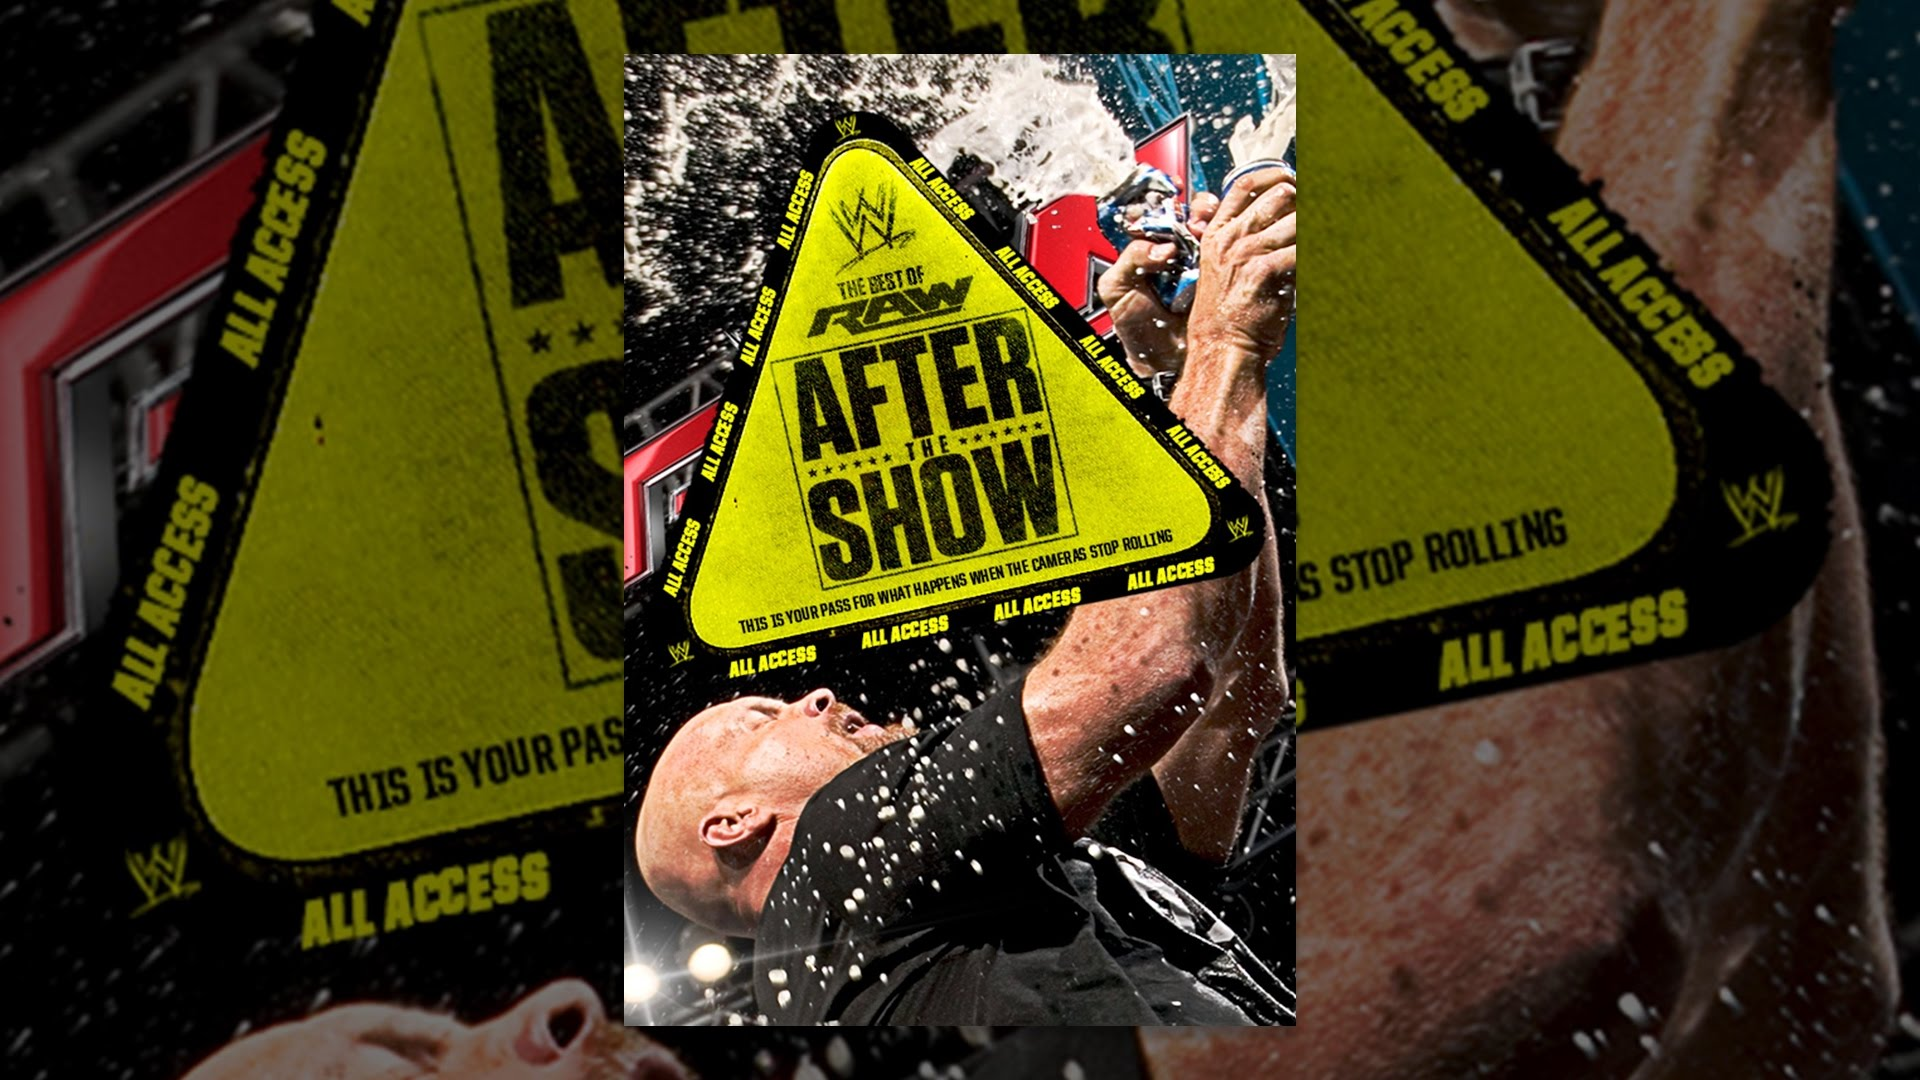 WWE Best of RAW After the Show Vol. 3